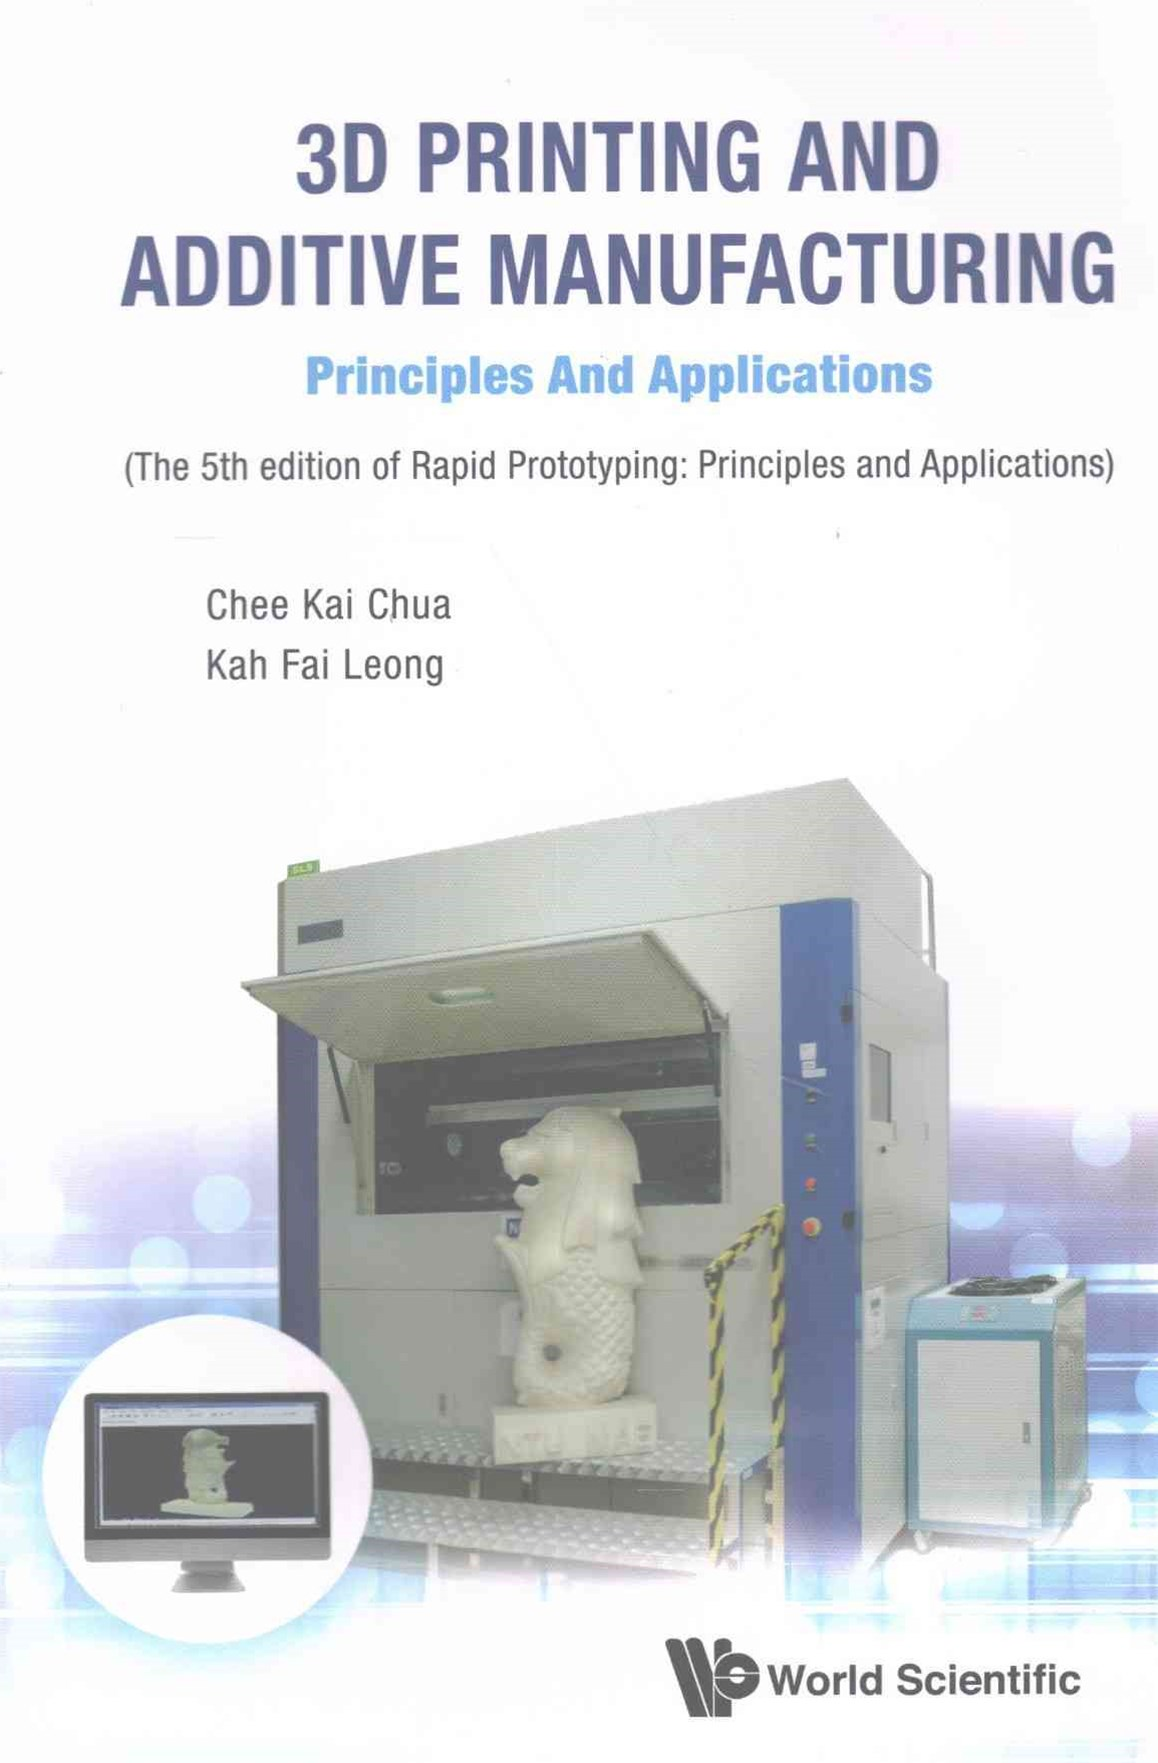 3D Printing and Additive Manufacturing: Principles and Applications (Fifth Edition)